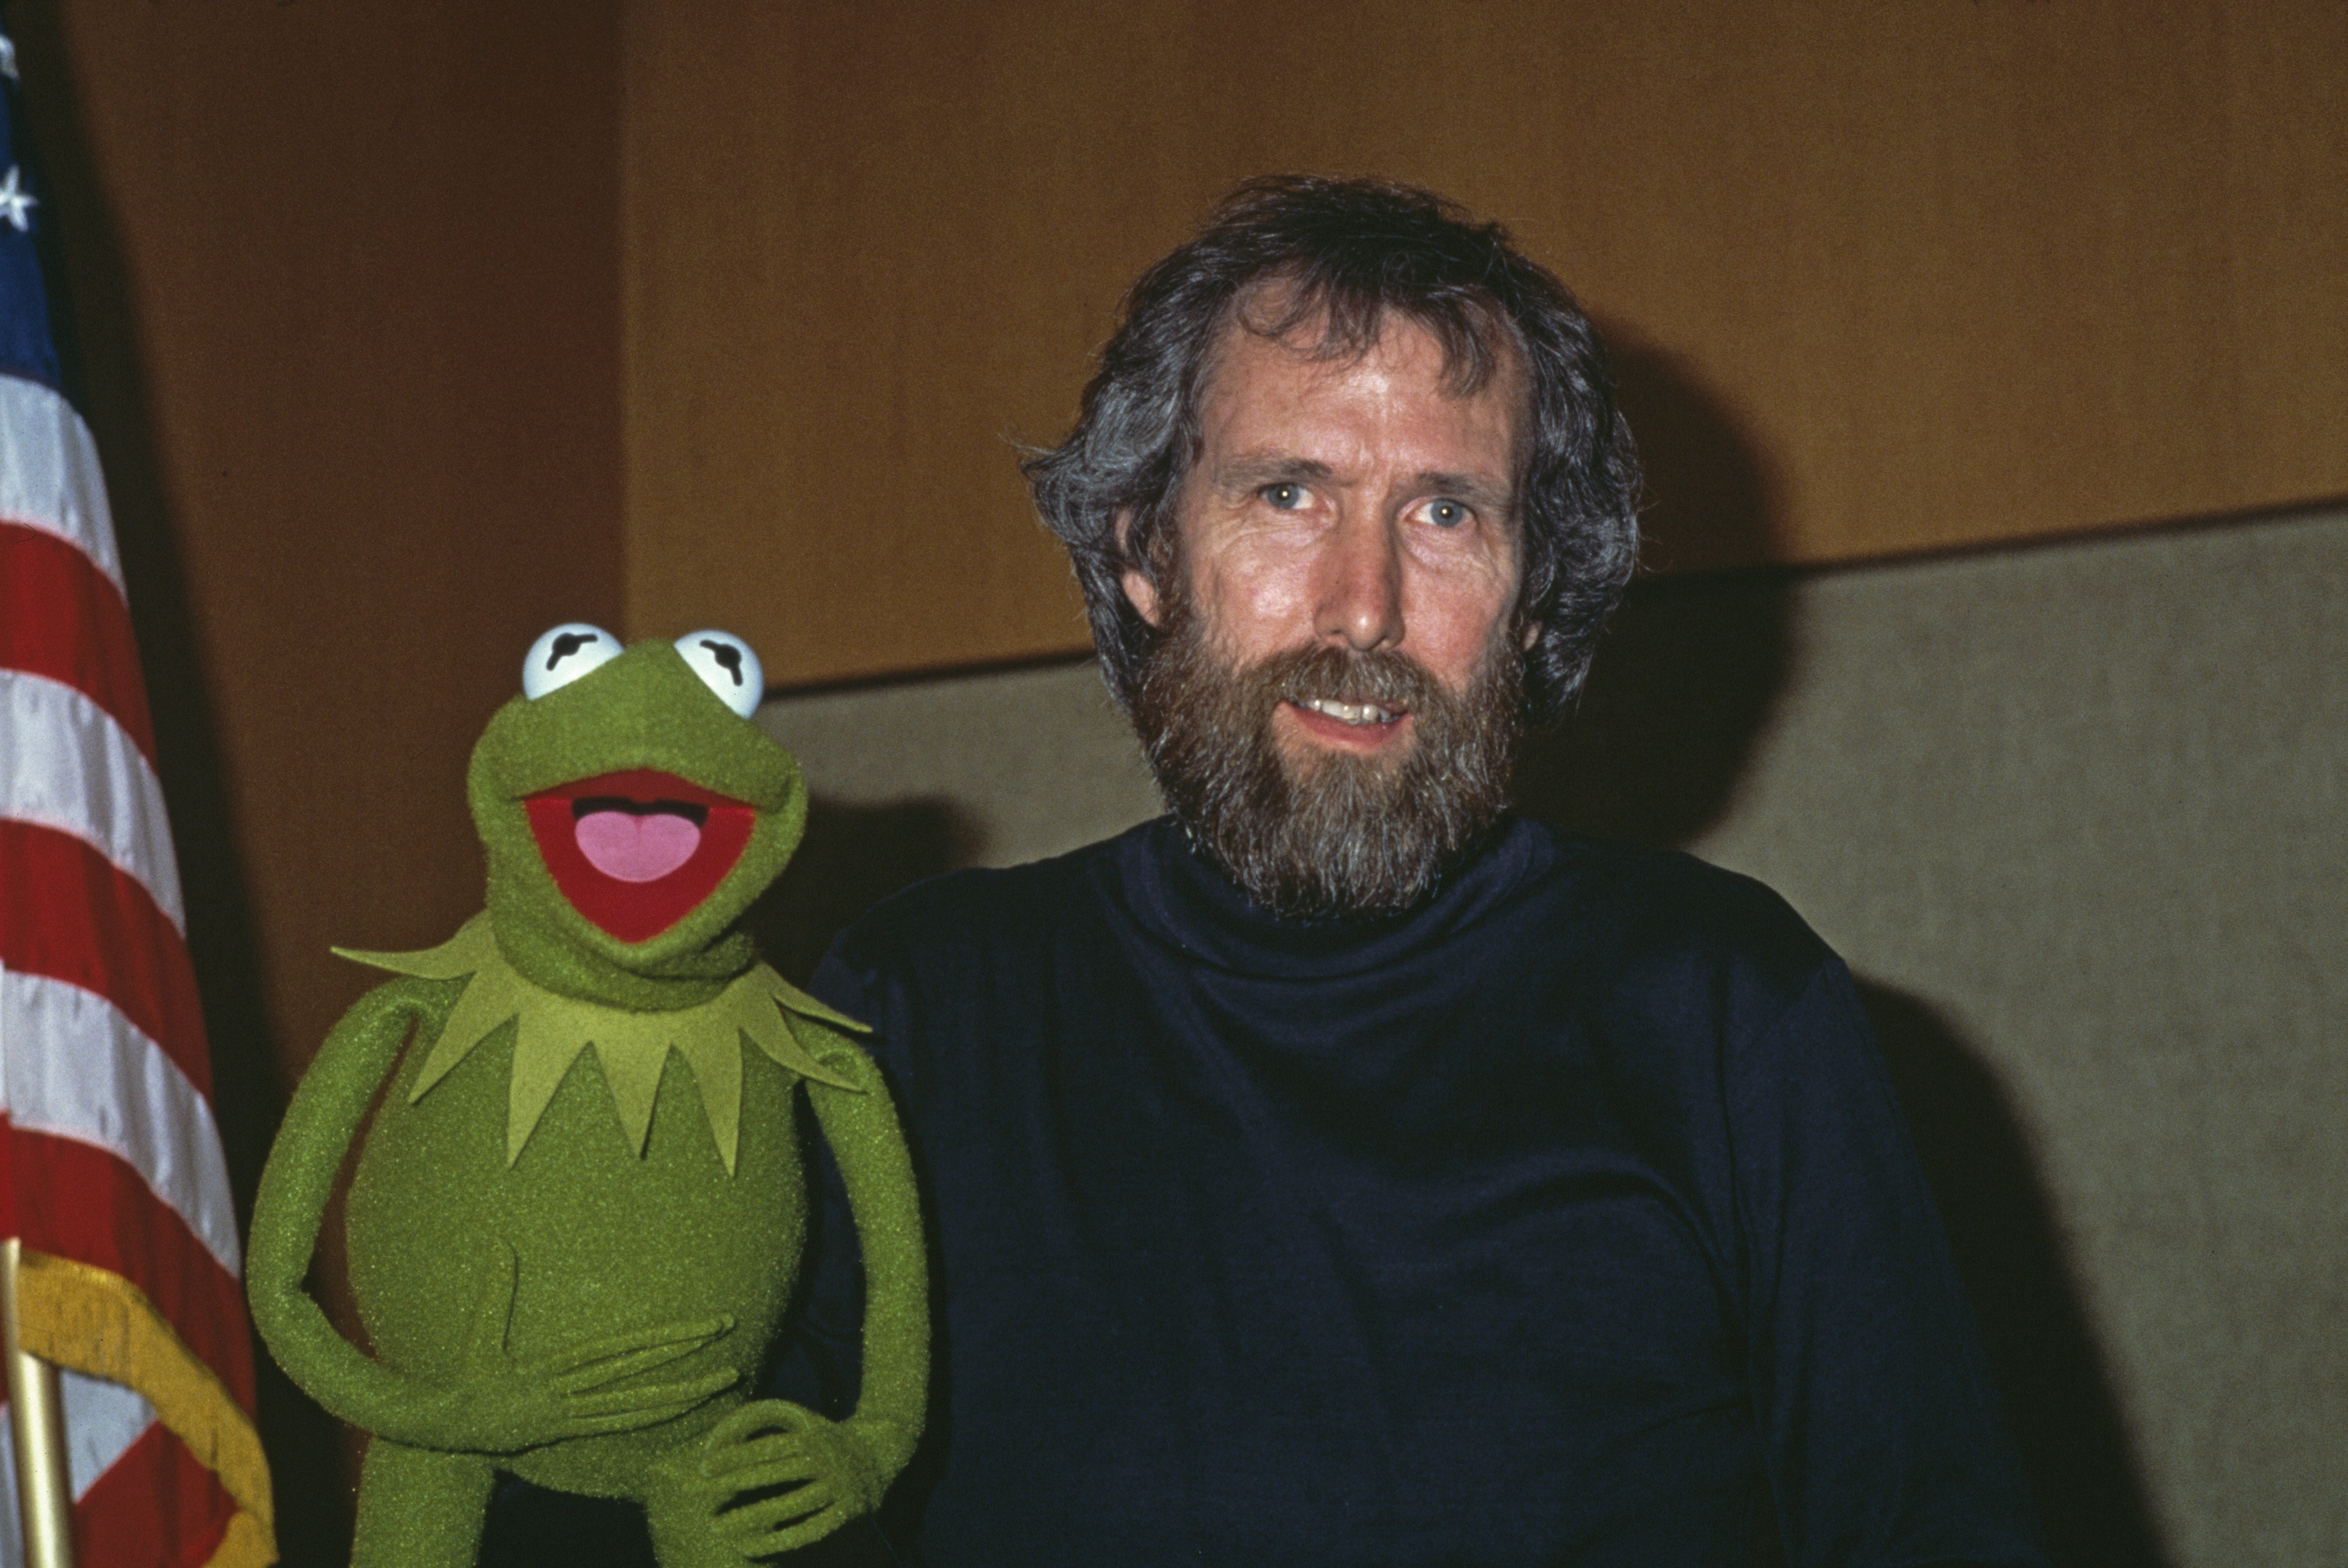 American puppeteer and filmmaker Jim Henson (1936 - 1990) with his best-known Muppet character, Kermit the Frog, January 1984.   Source: Getty Images